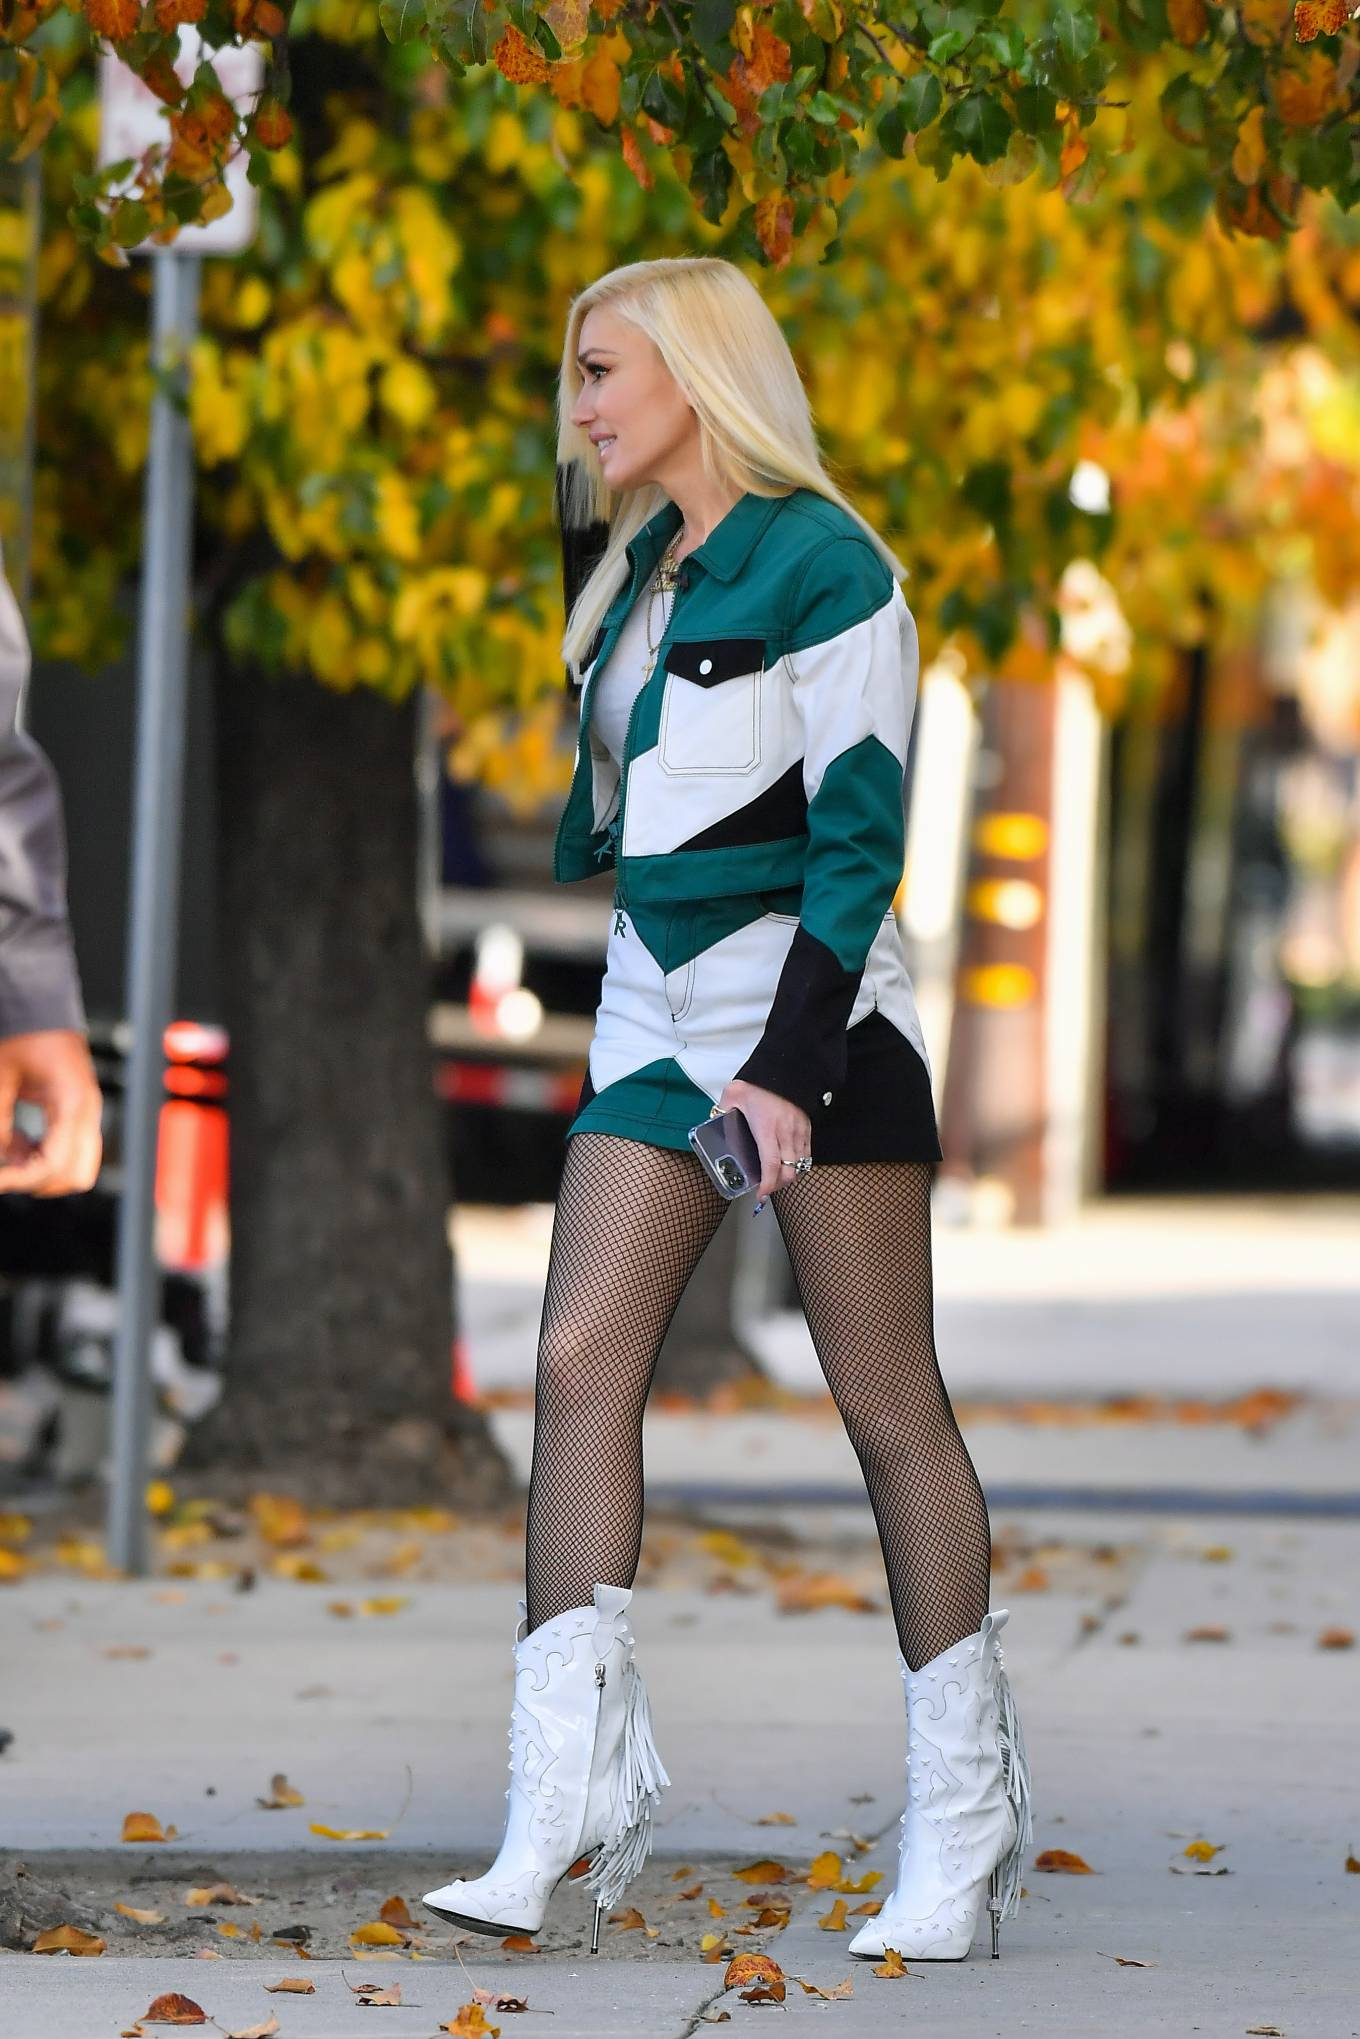 Gwen Stefani - Looks chic while out in Pasadena